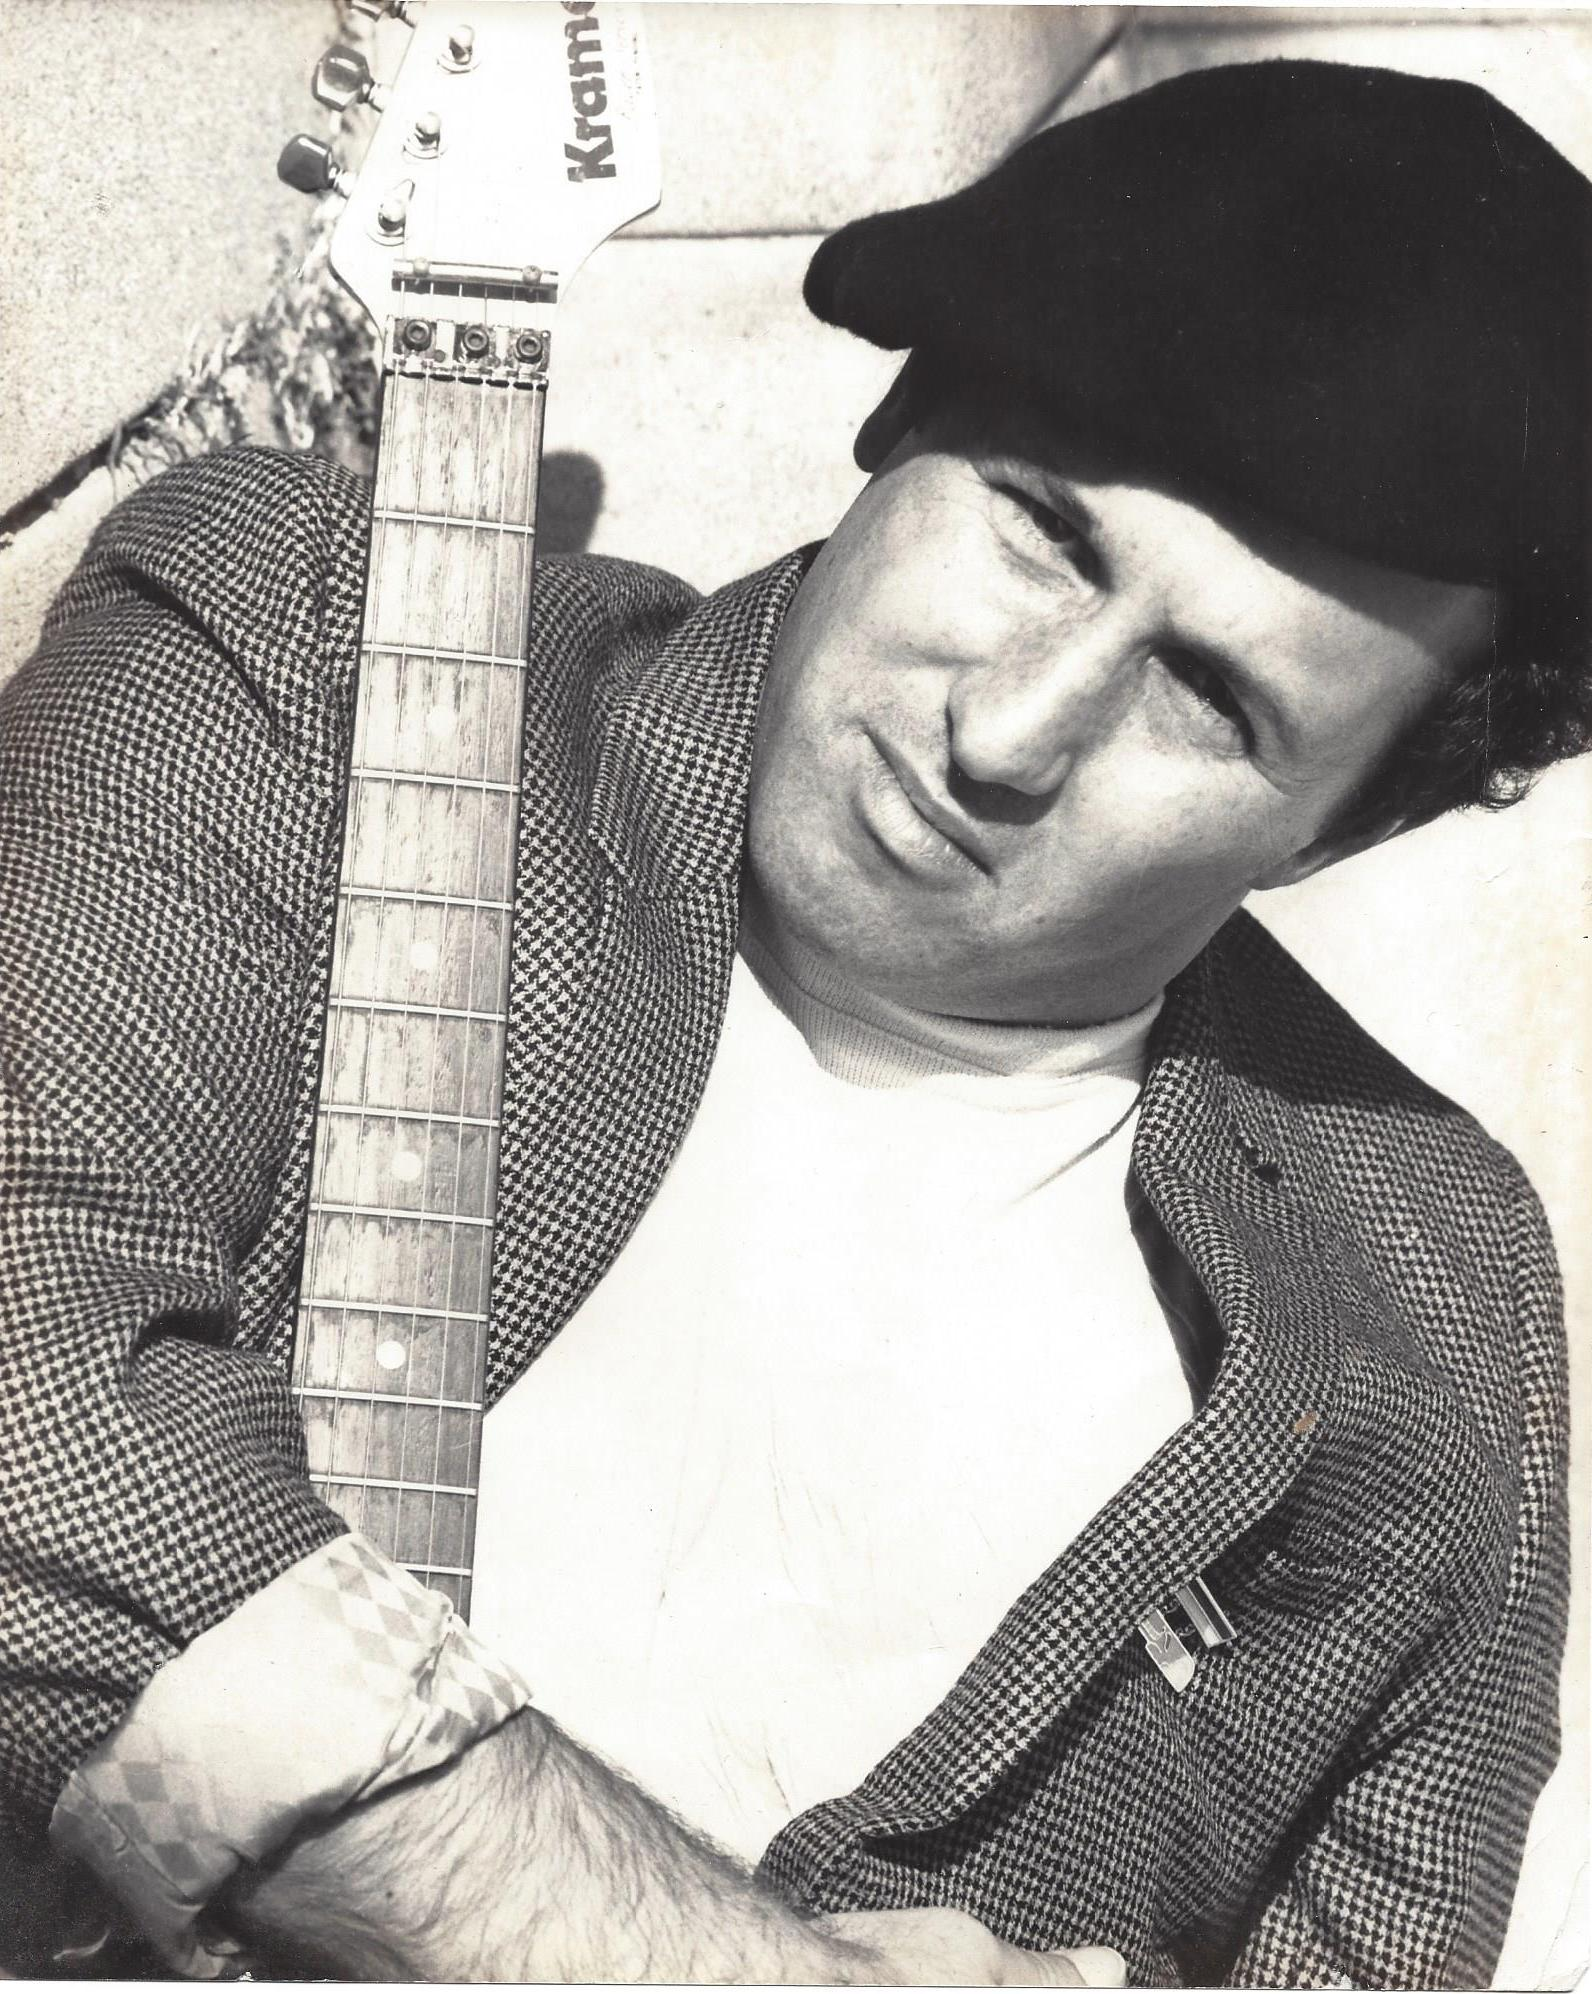 eddy-and-guitar